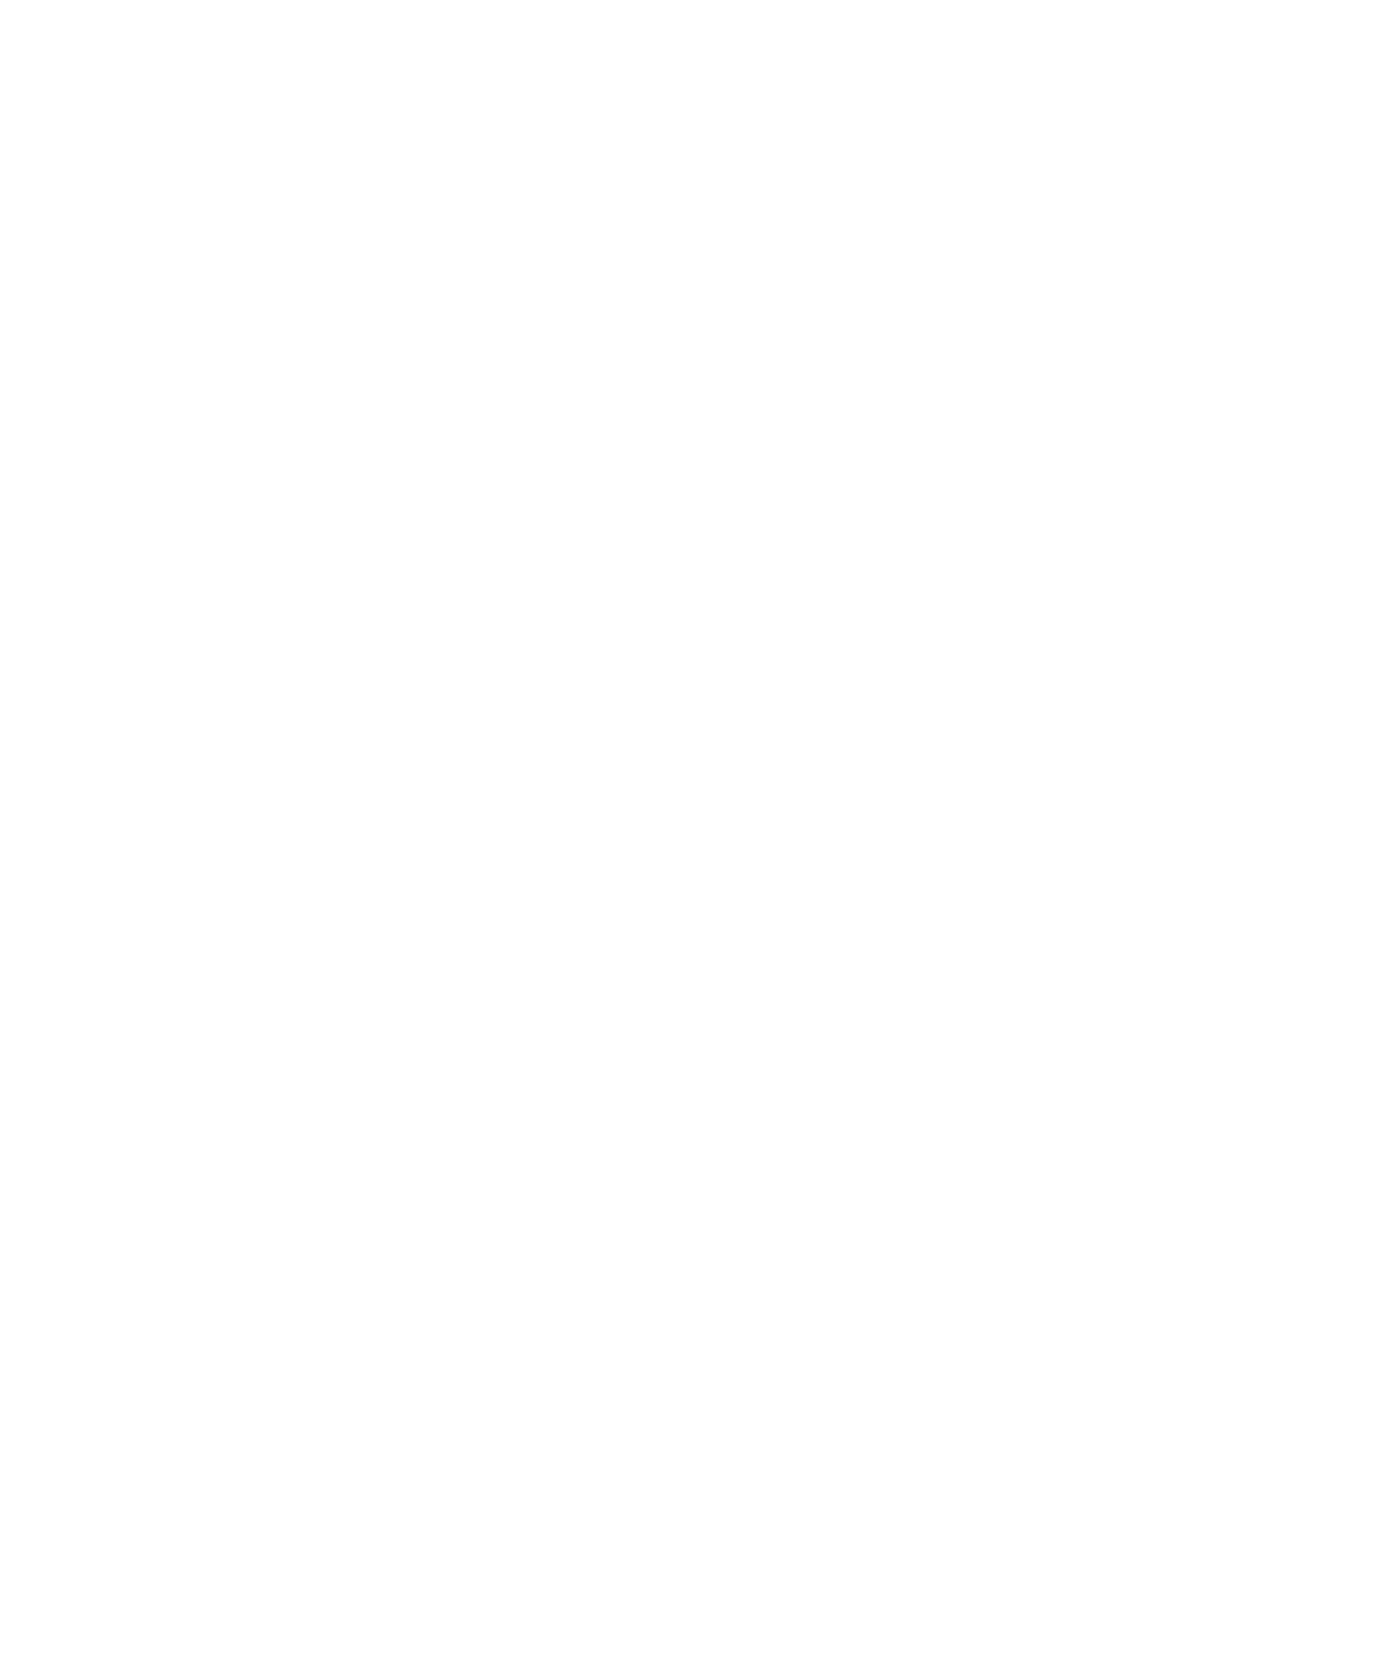 WriteMind